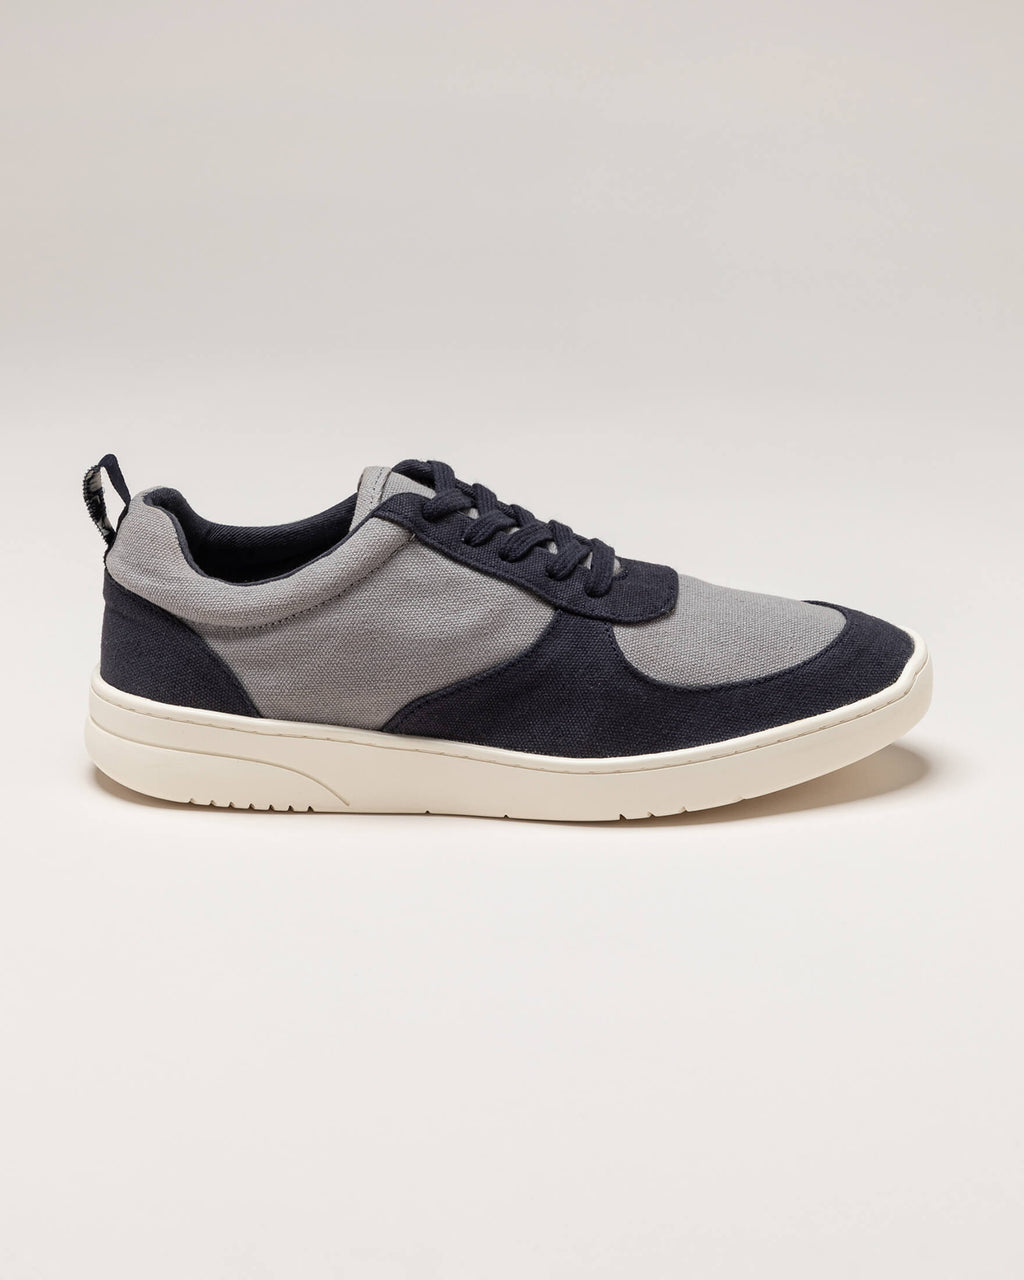 variant_1 | EN blue grey men's sneakers with laces | DE blaue graue herren sneakers mit Schnürsenkel